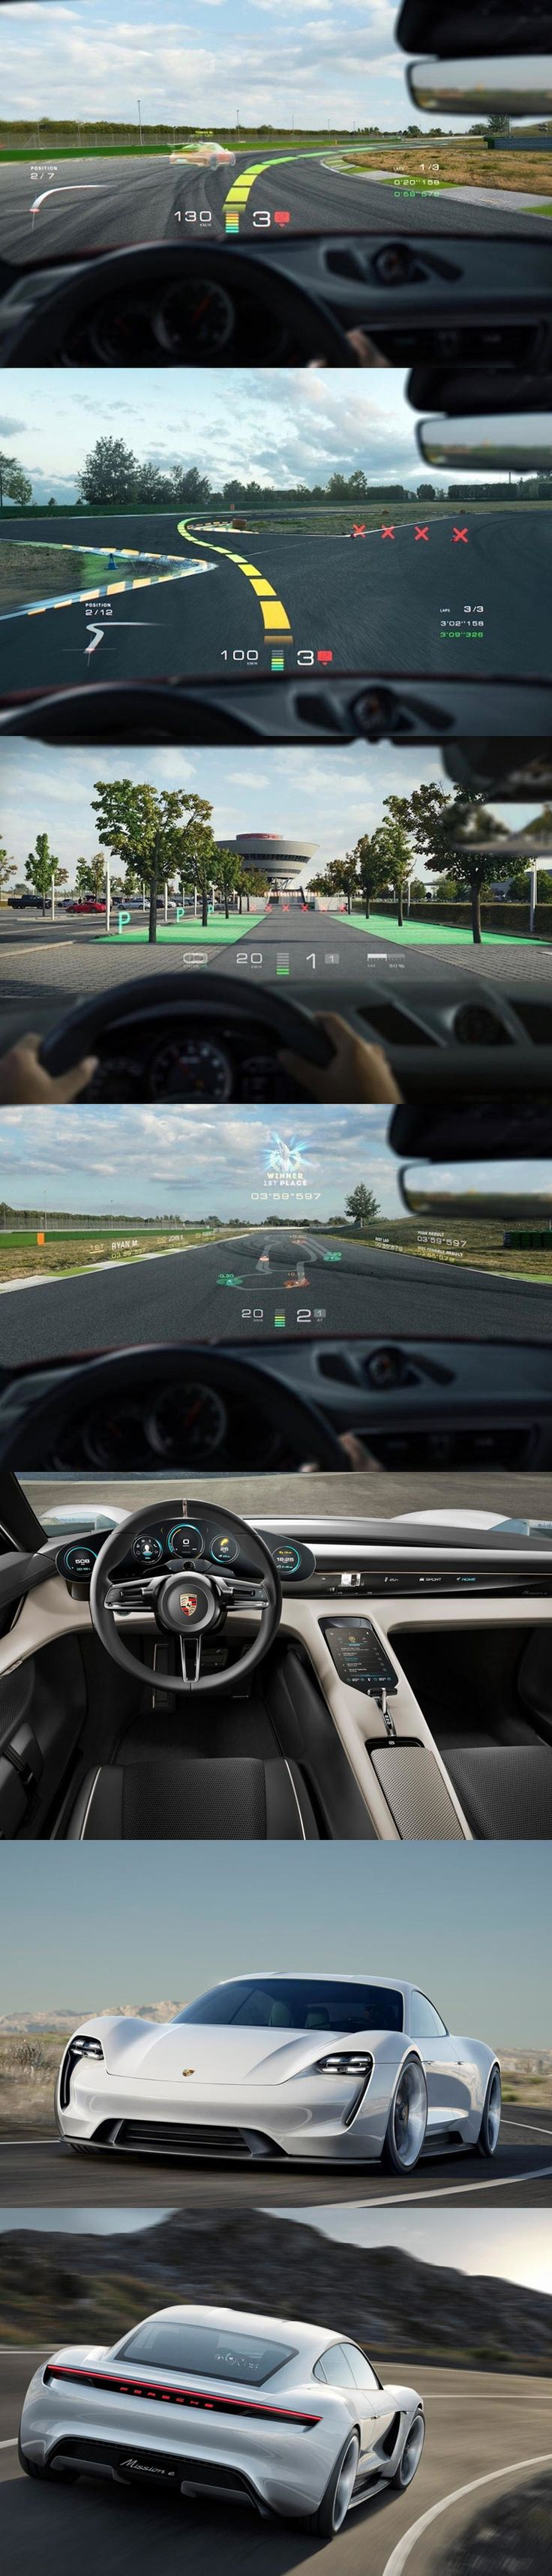 Your Next Porsche Could Have A Hologram On The Windshield. Video game technology used in real world conditions.